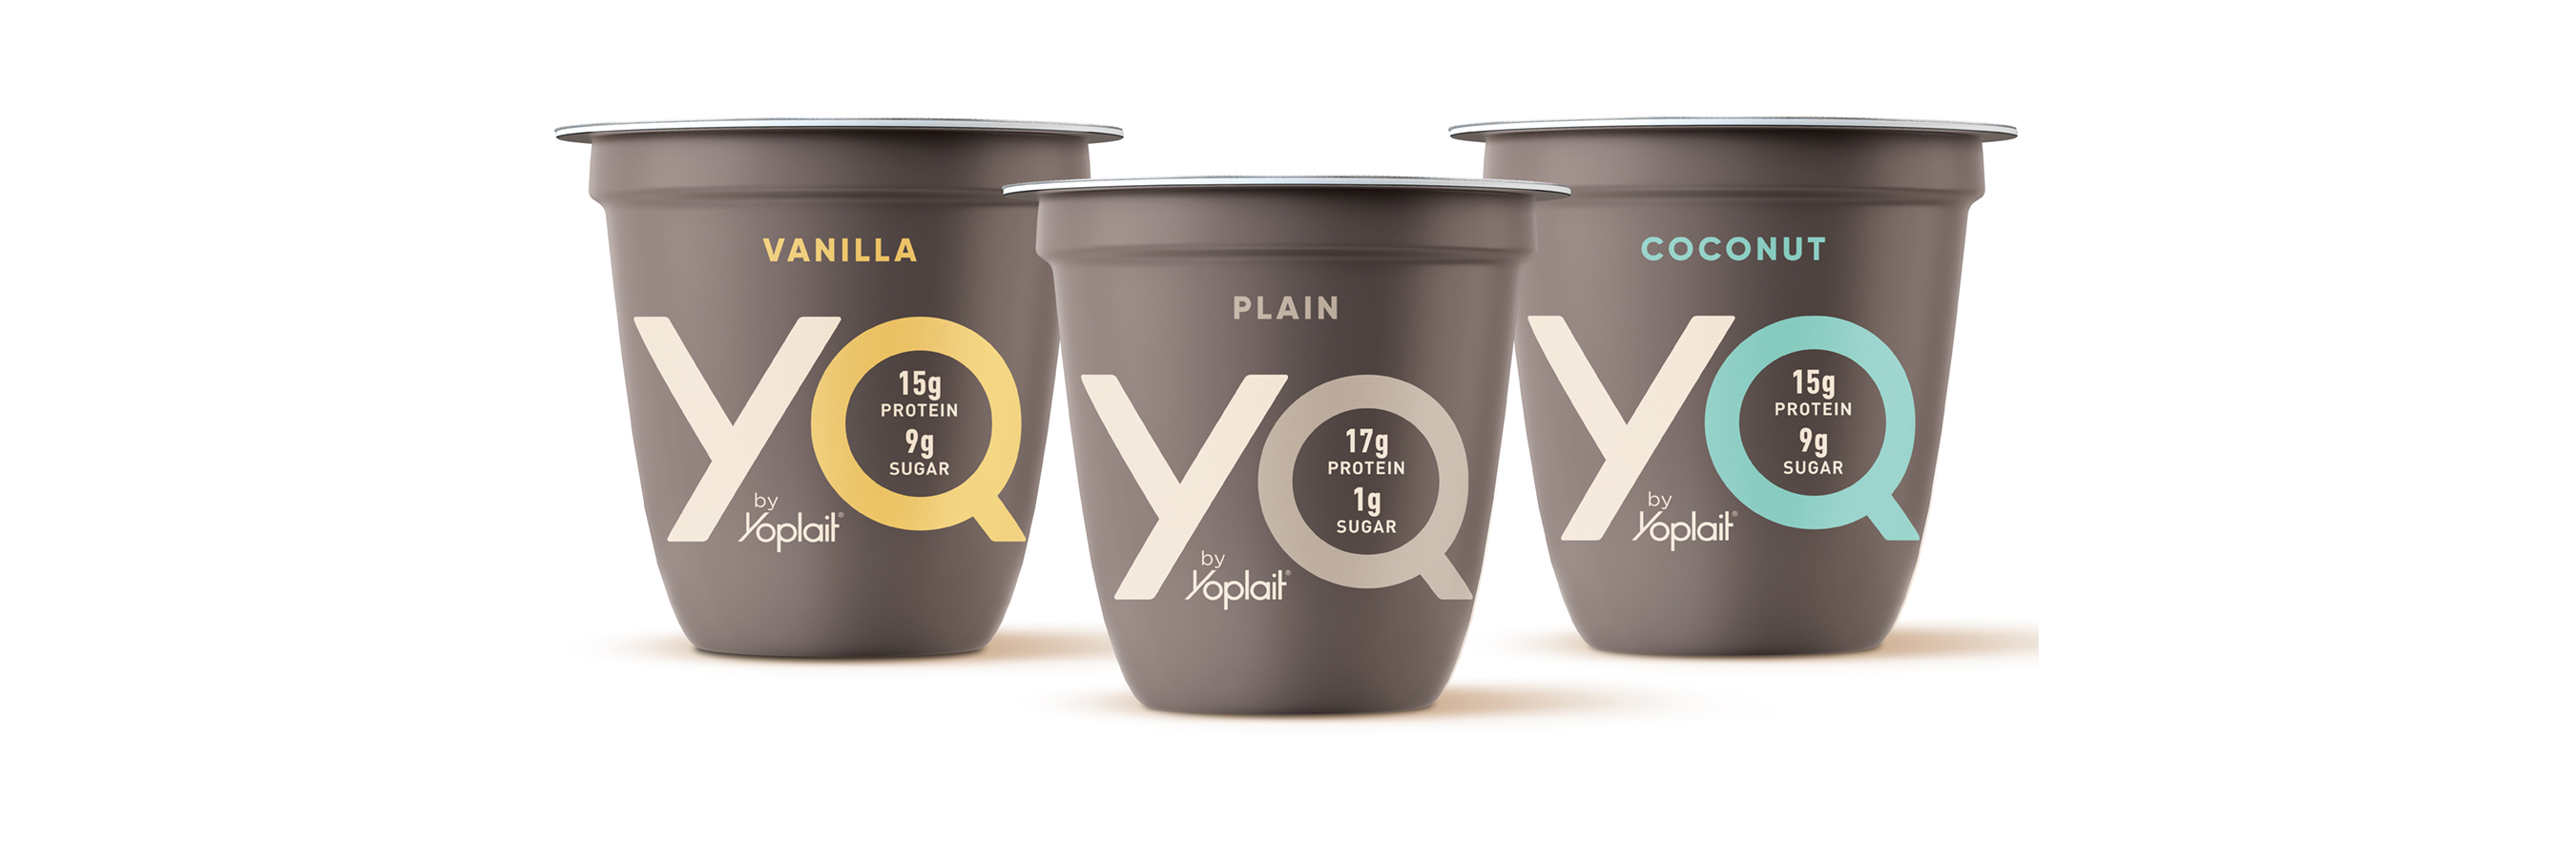 YQ Yoplait flavors